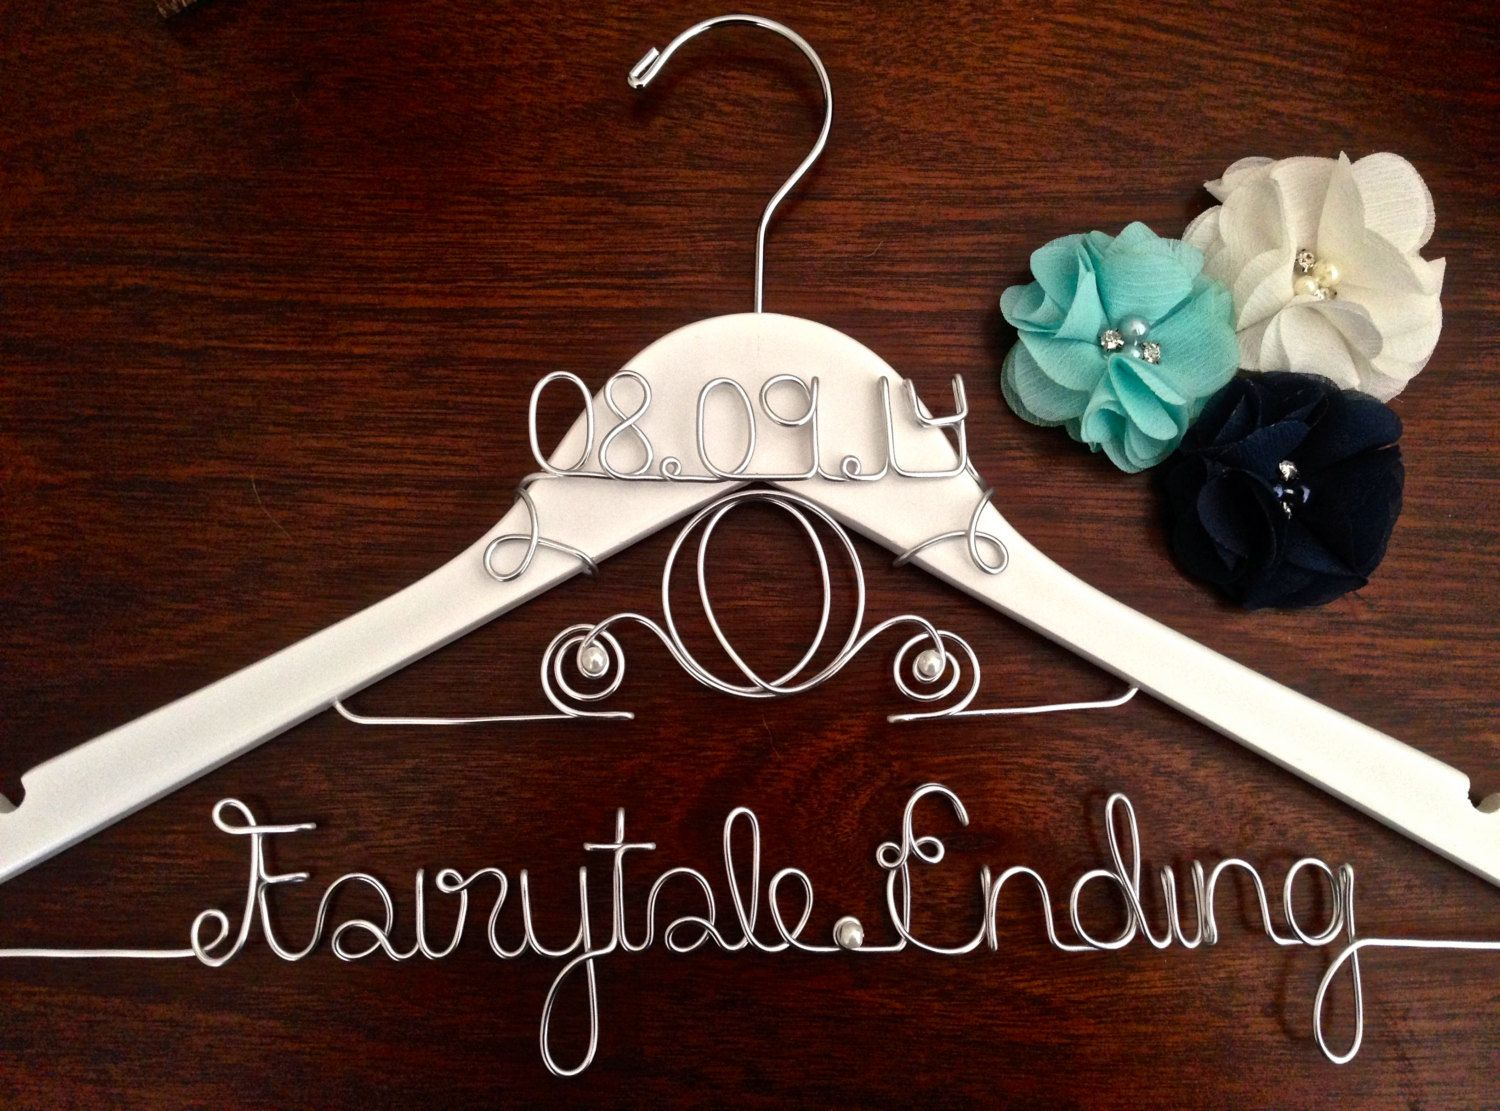 Cinderella Wedding Hanger! For That Magical Touch to Your Fairytale Wedding! by CarolinaTwist on Etsy